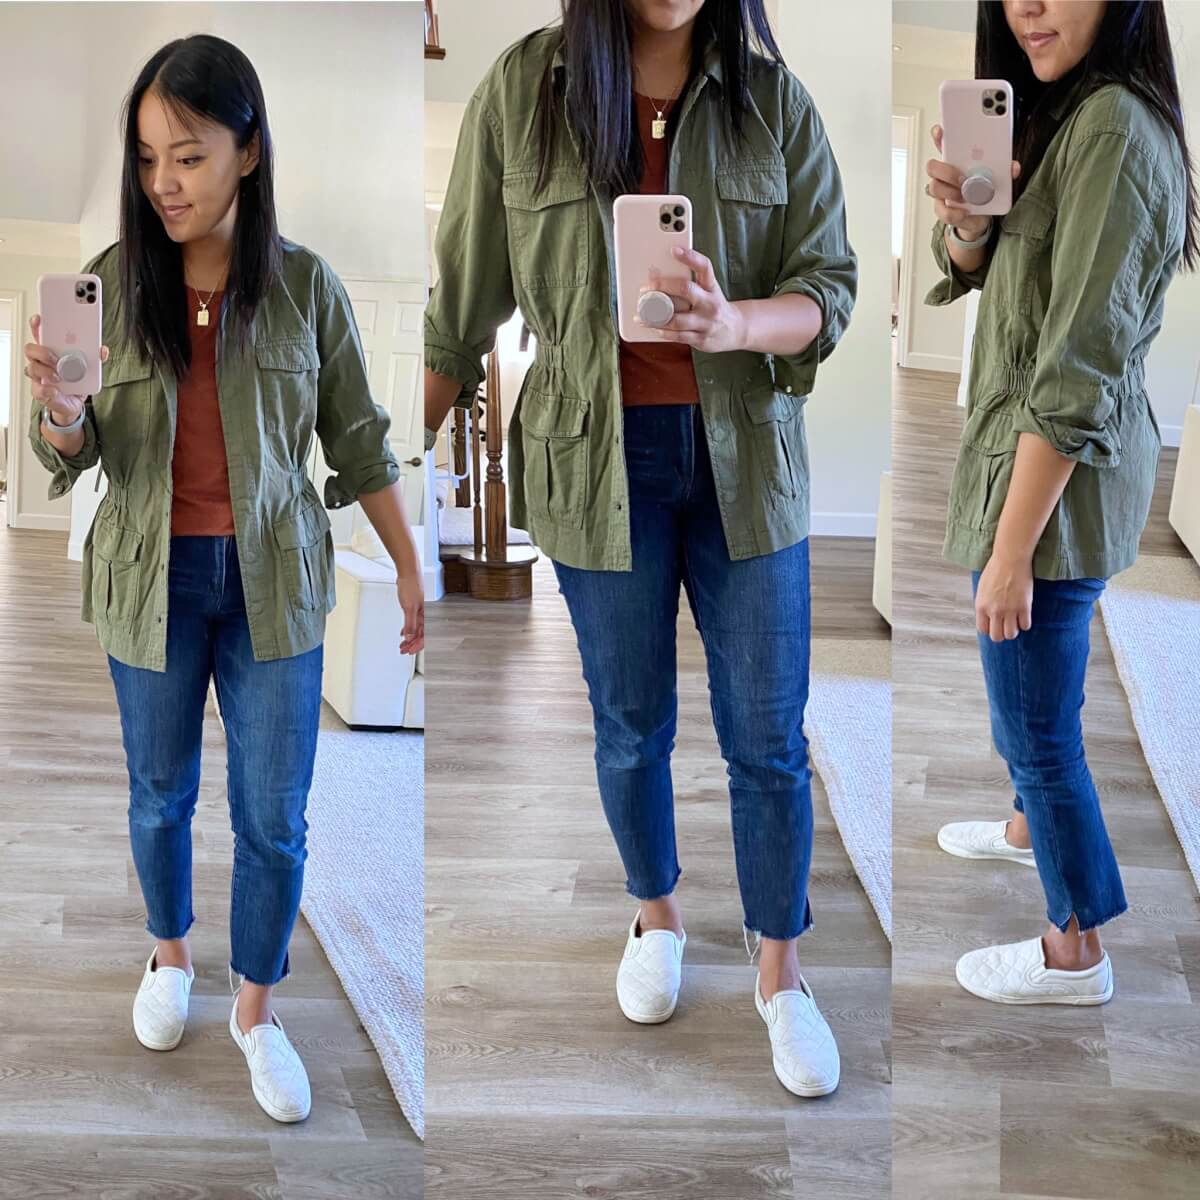 Casual Early Fall Outfit: rust top + blue straight leg raw hem jeans + olive utility jacket + gold pendant necklace + white slip-on sneakers